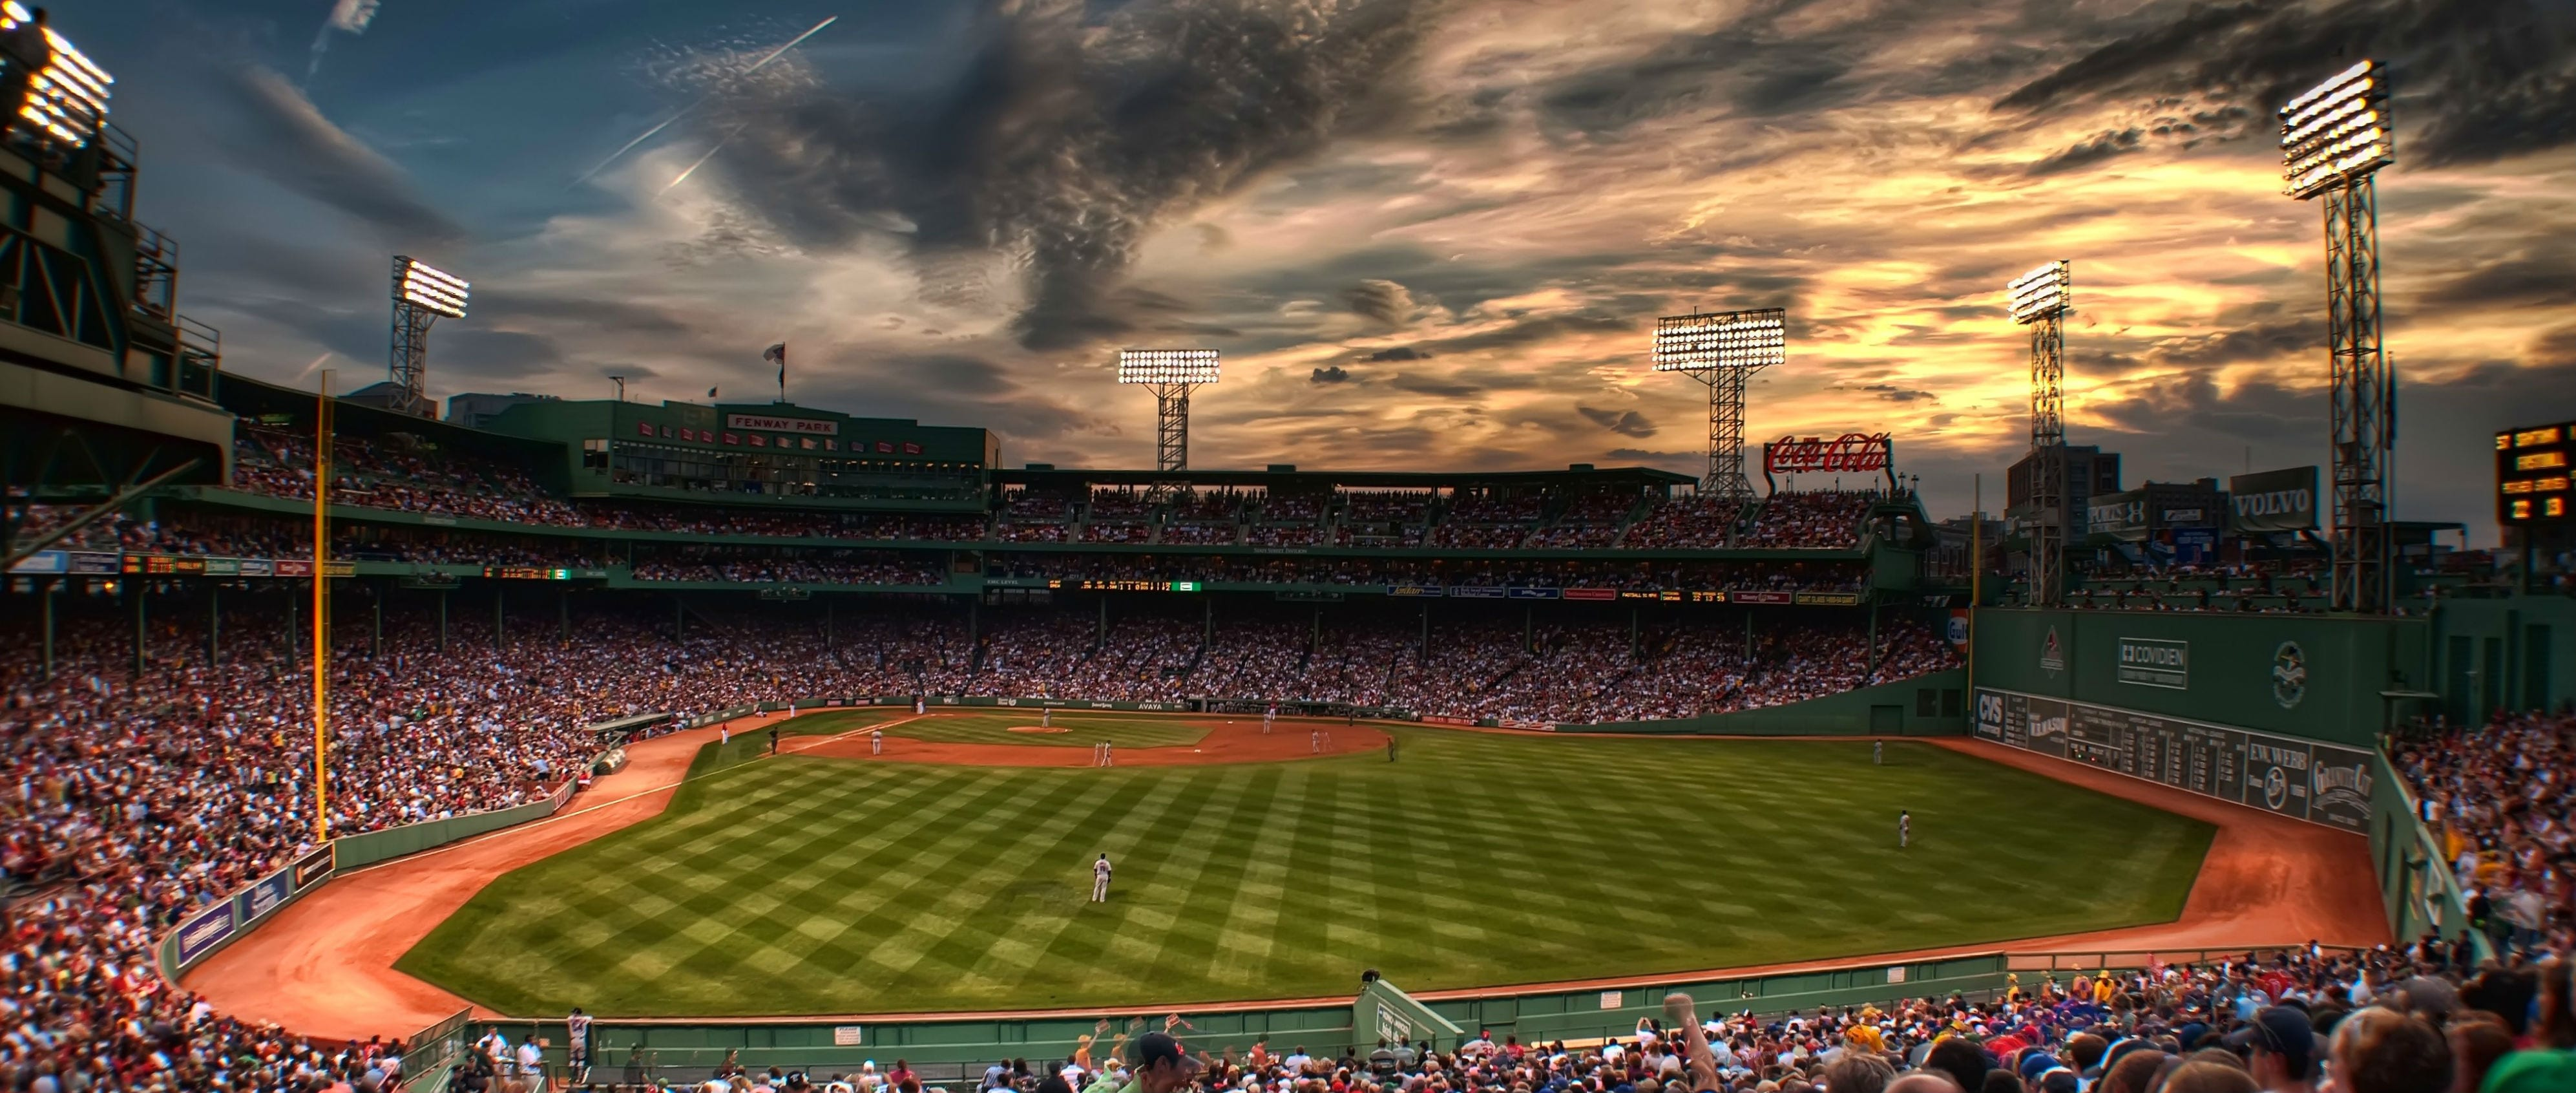 Cheapest Garage In Boston Fenway Park Parking Guide Tips Maps Deals Spg